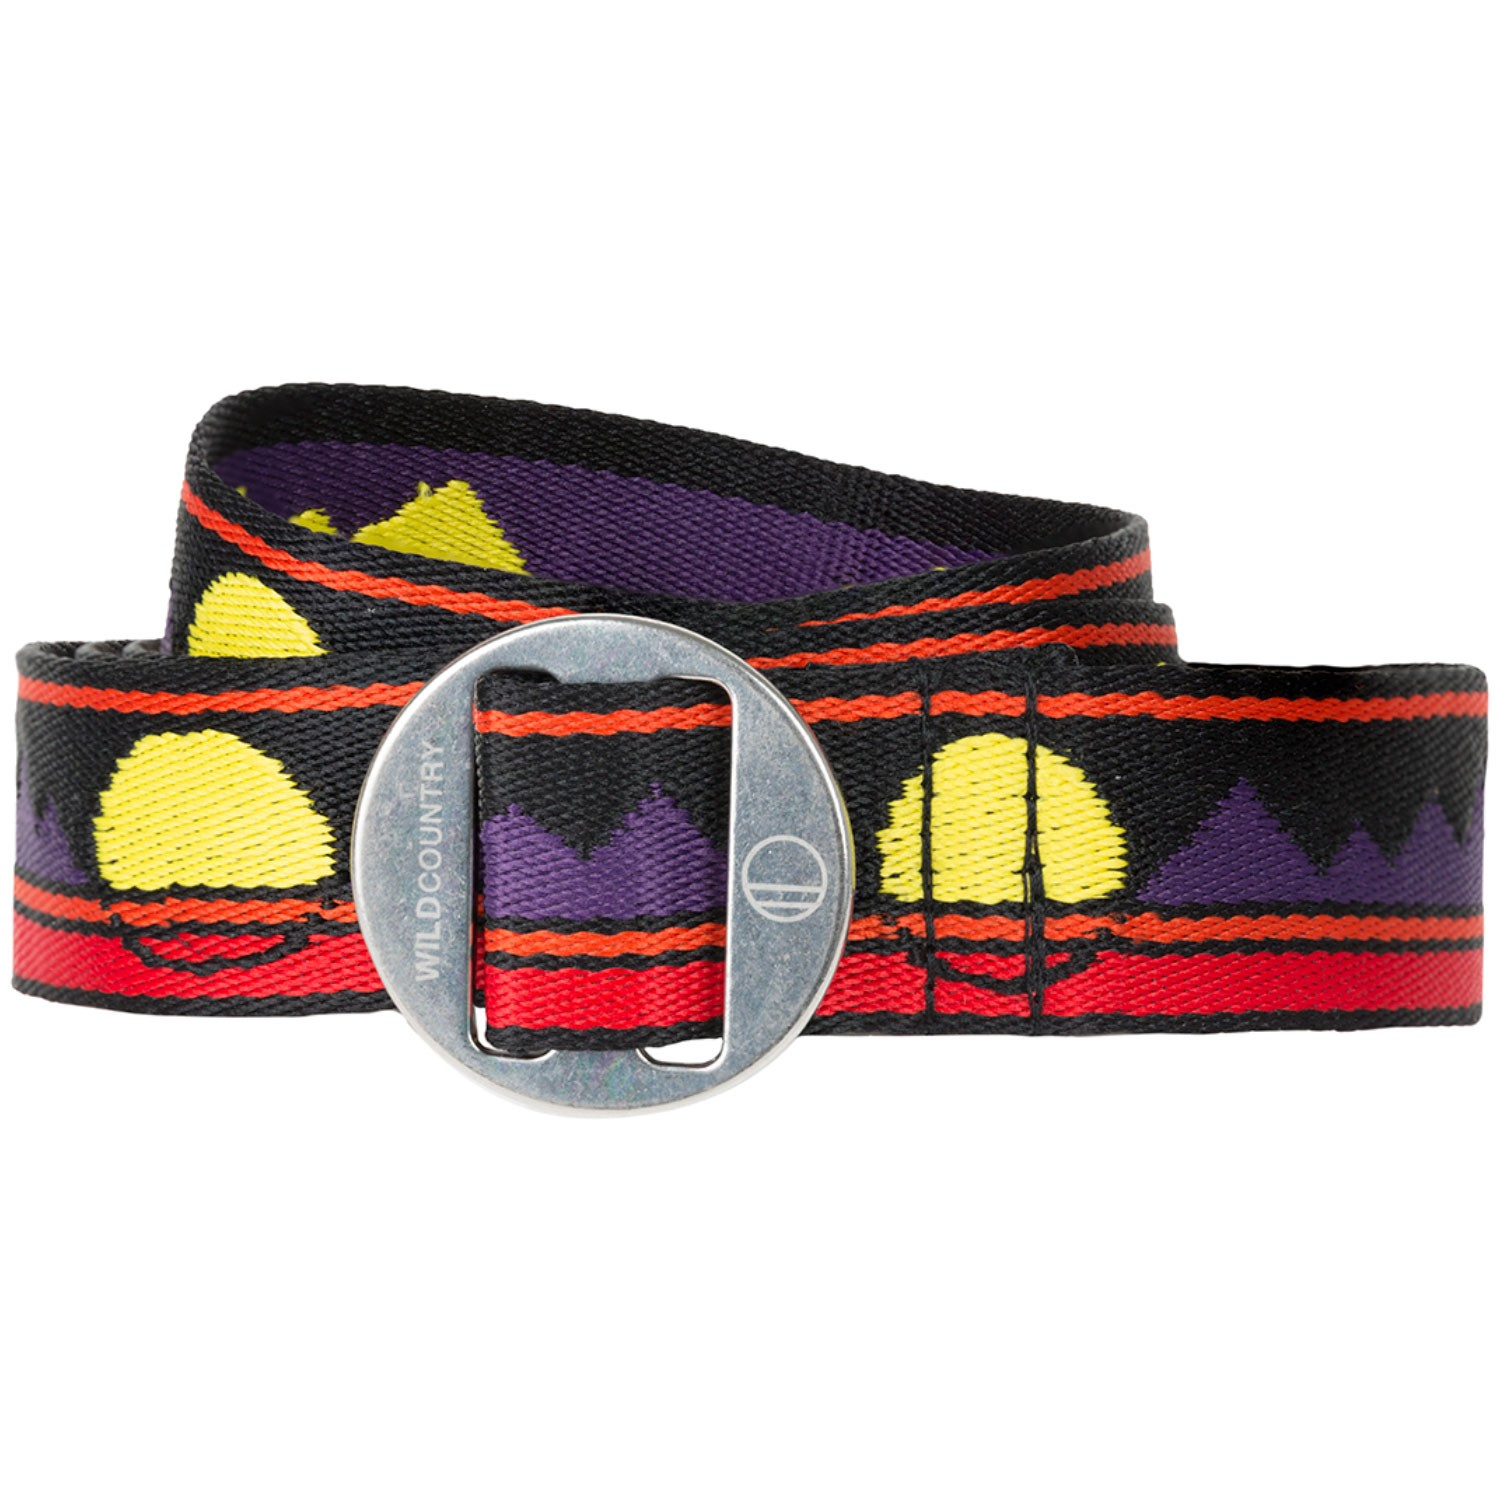 Wild Country Sunrise Belt - Black Out/Mountains